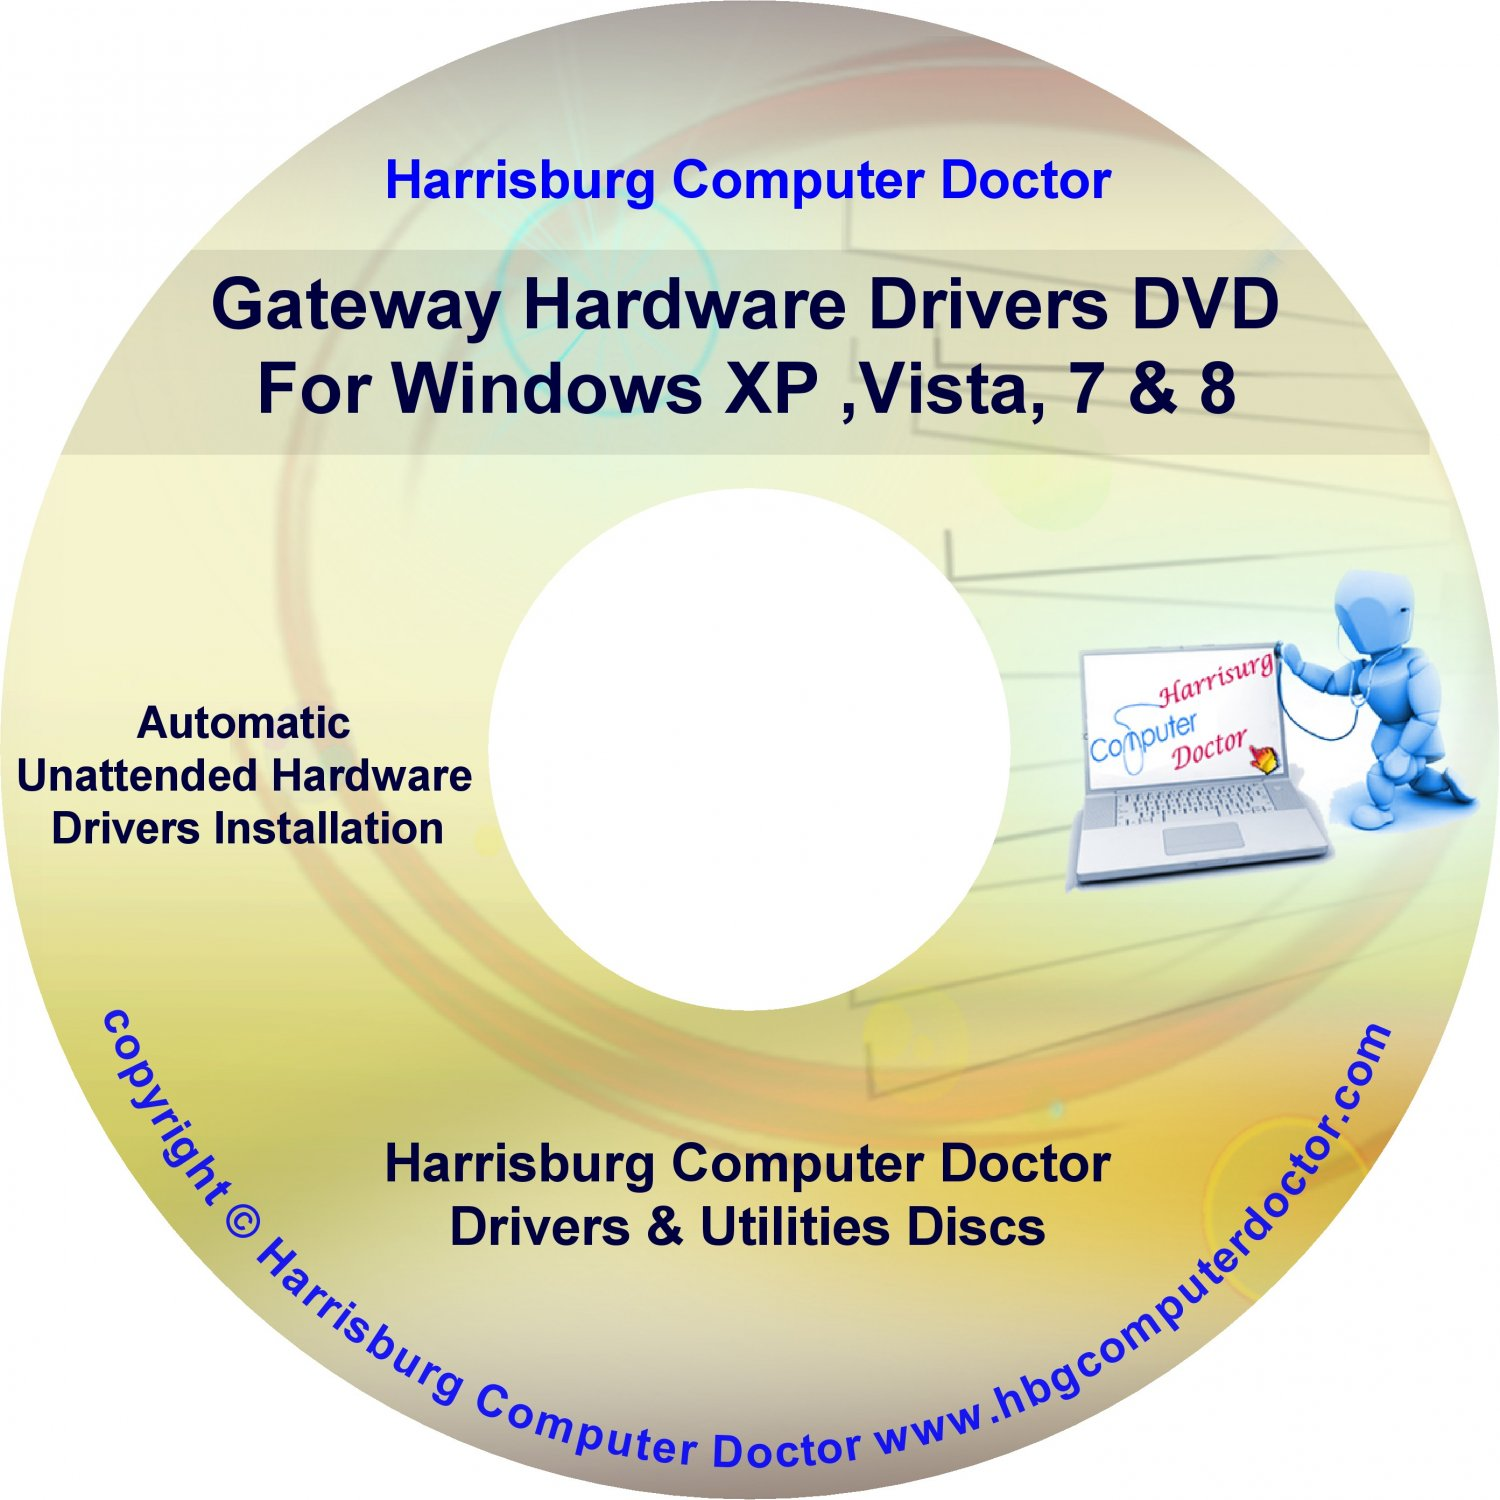 Gateway ZX6910 Drivers DVD For Windows, XP, Vista, 7 & 8